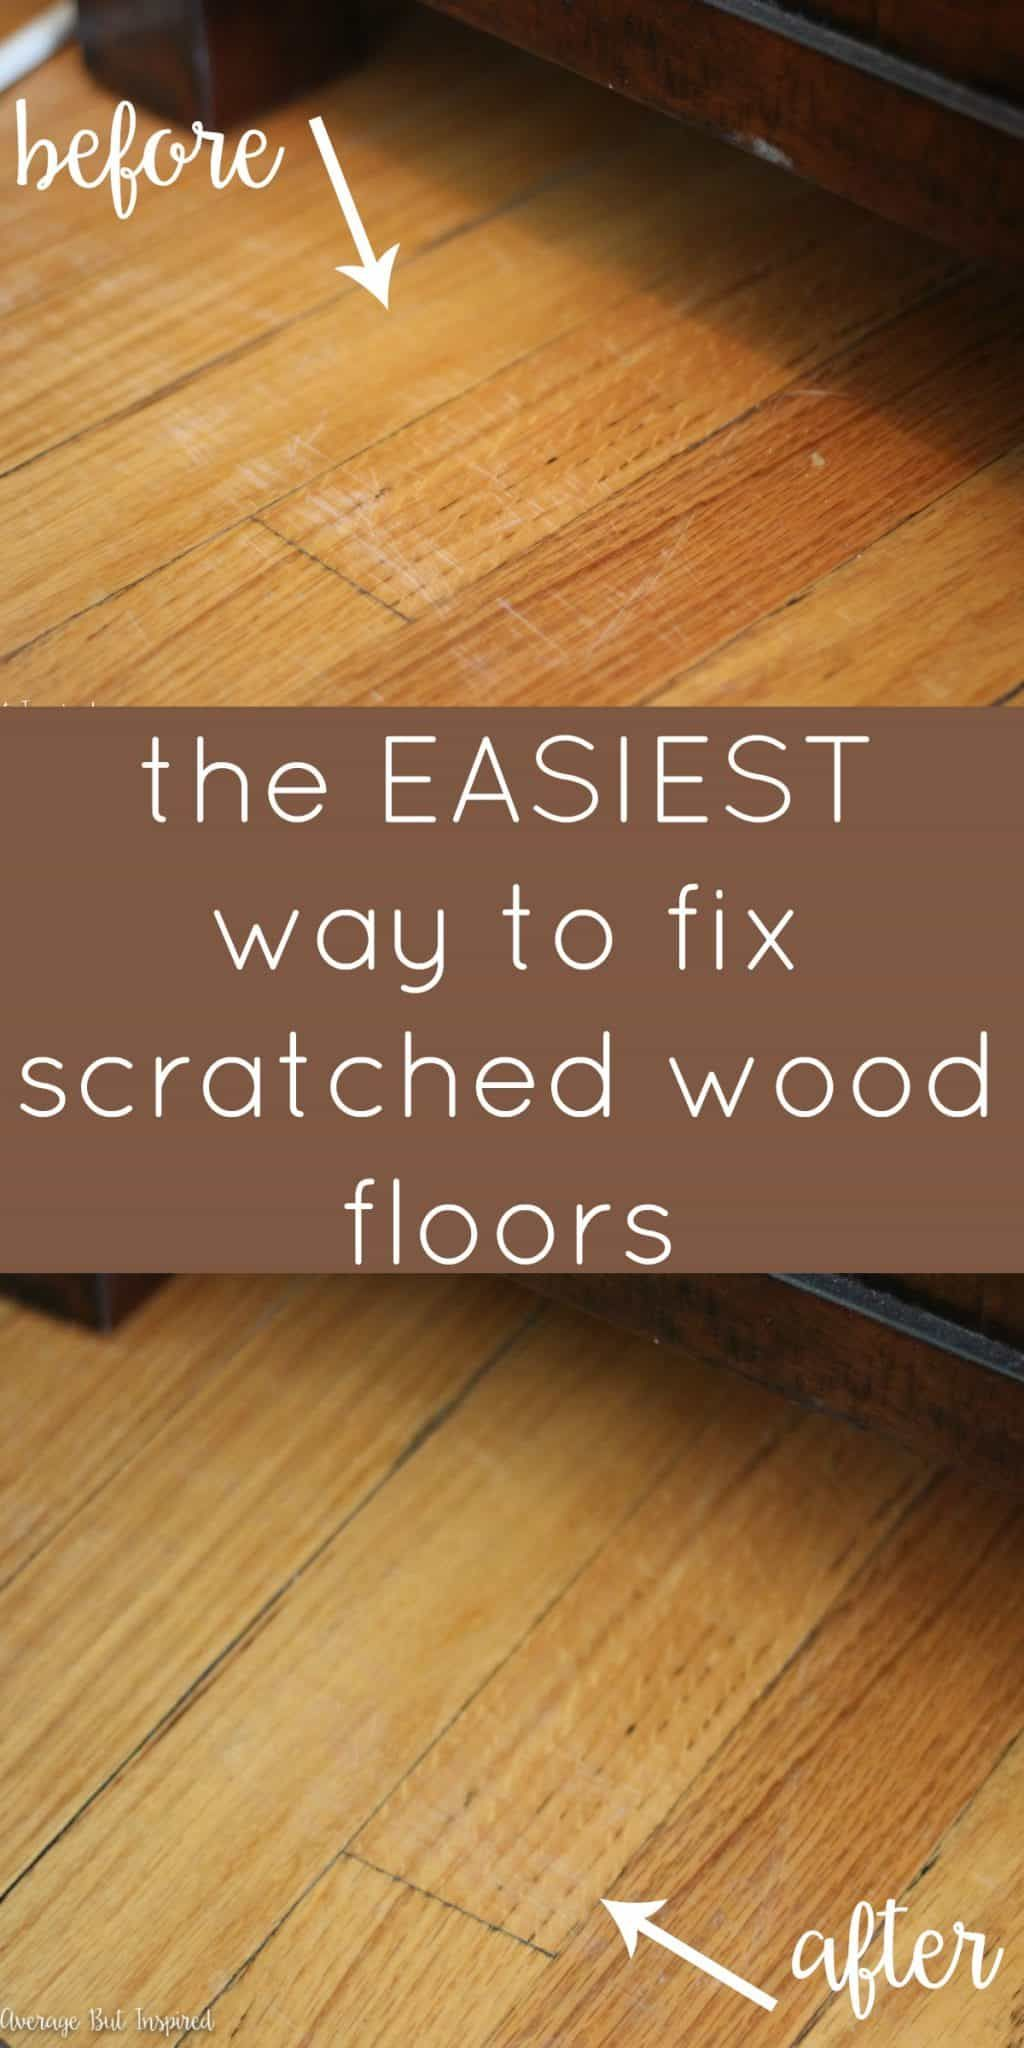 How To Fix Scratched Hardwood Floors In No Time Average But Inspired In 2020 Hardwood Floor Scratches Cleaning Wood Floors Flooring